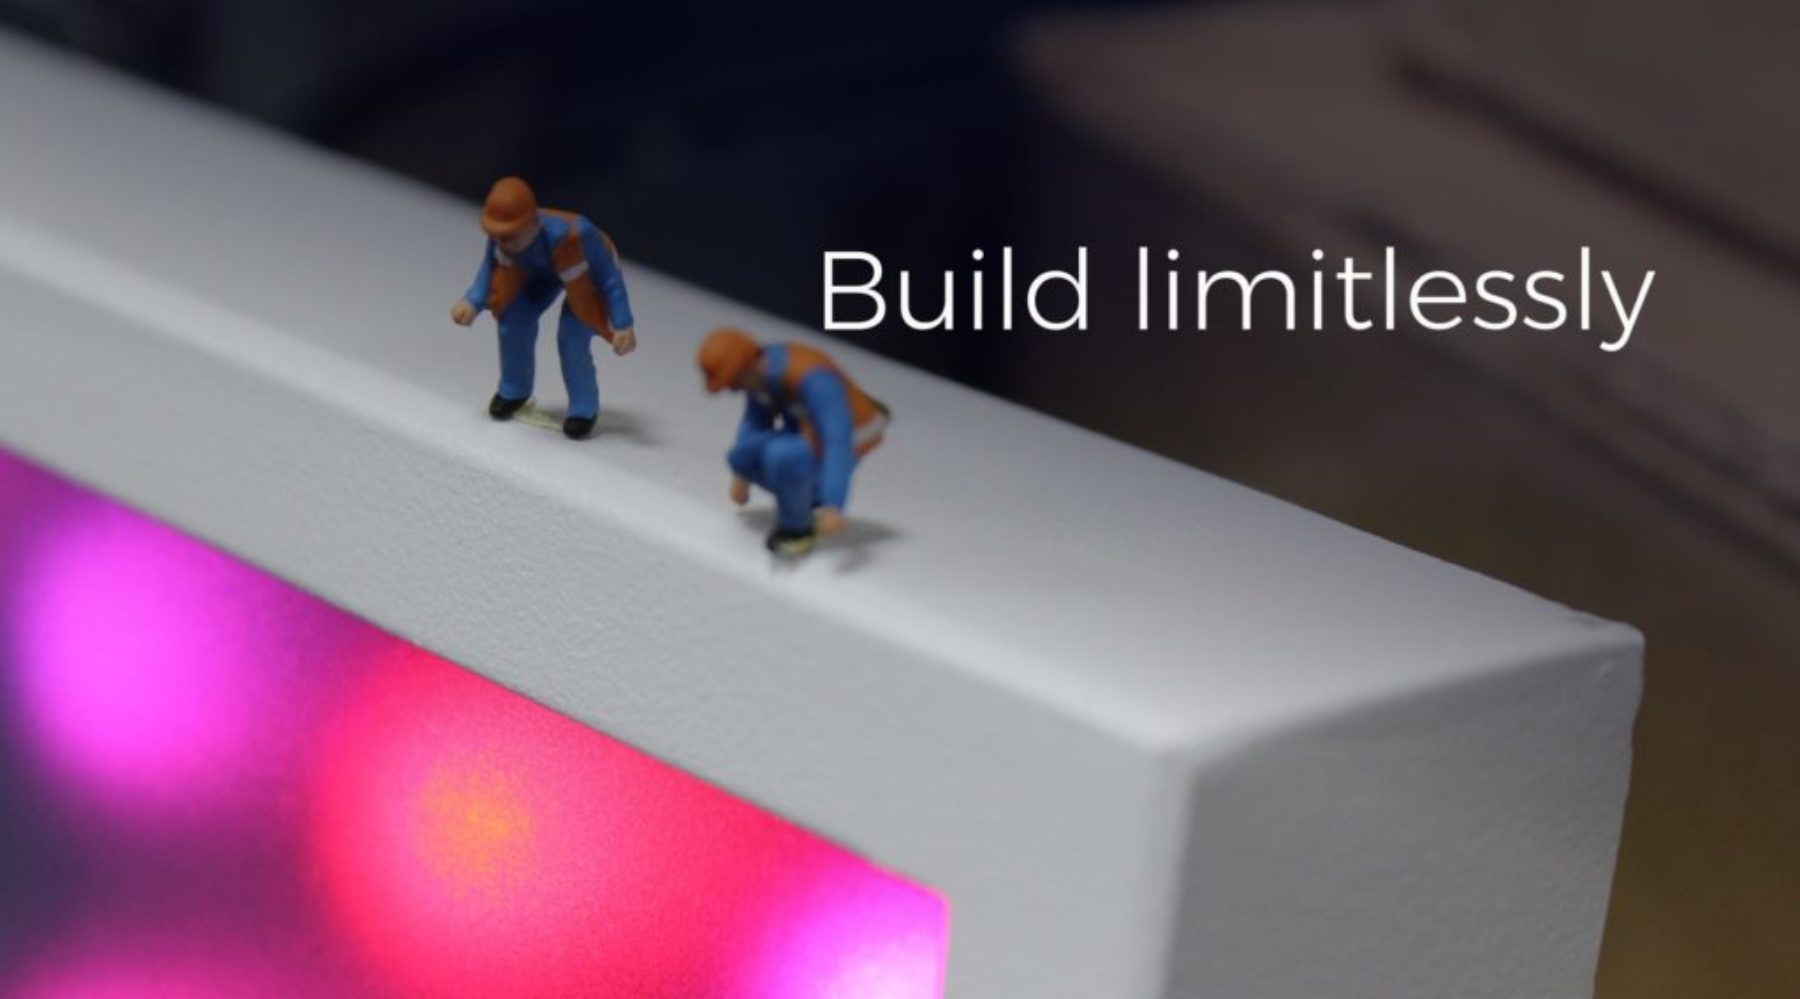 build_limitlessly